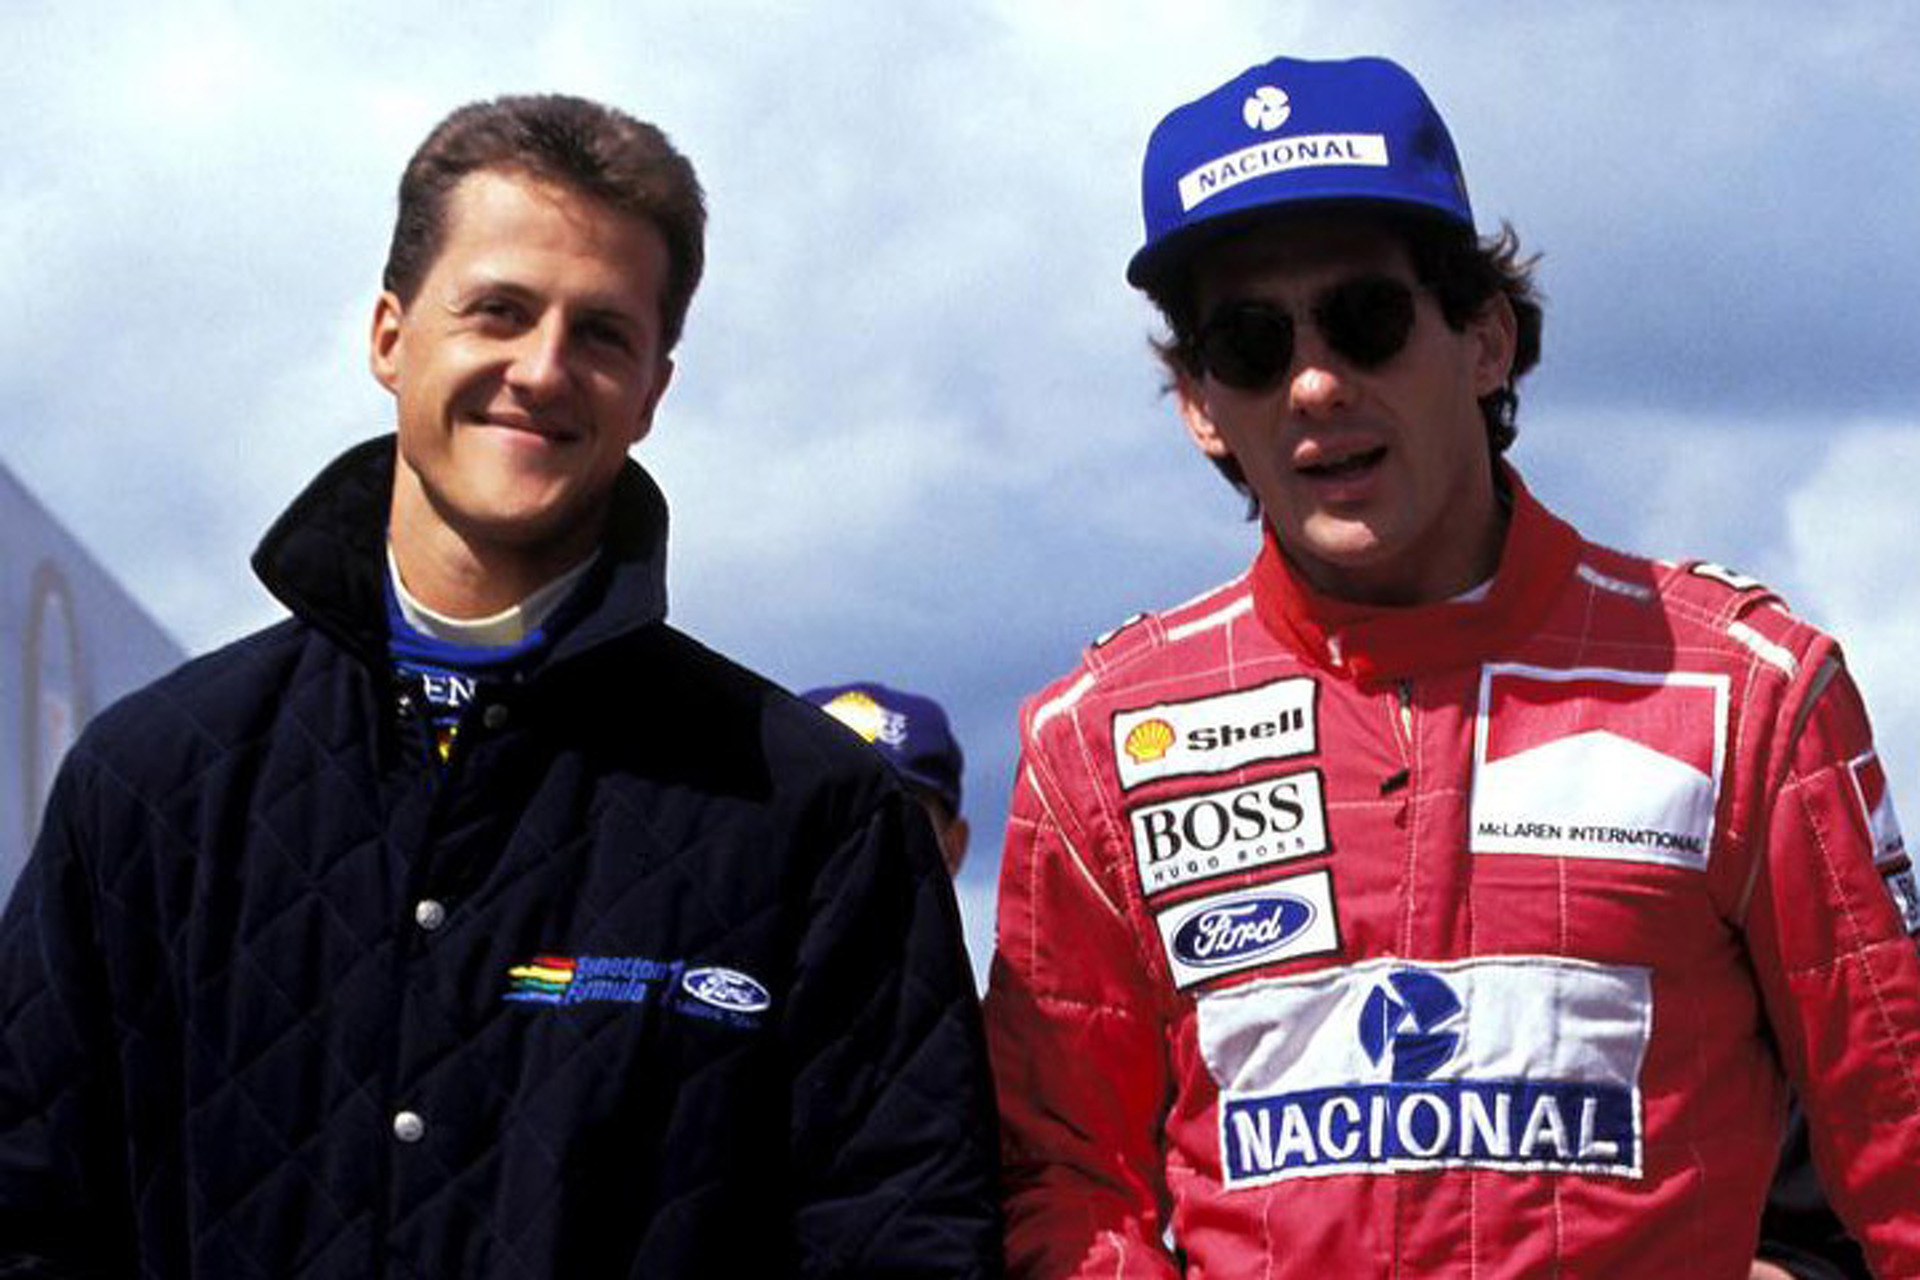 Michael Schumacher is 'Out of Coma' and Released from Hospital